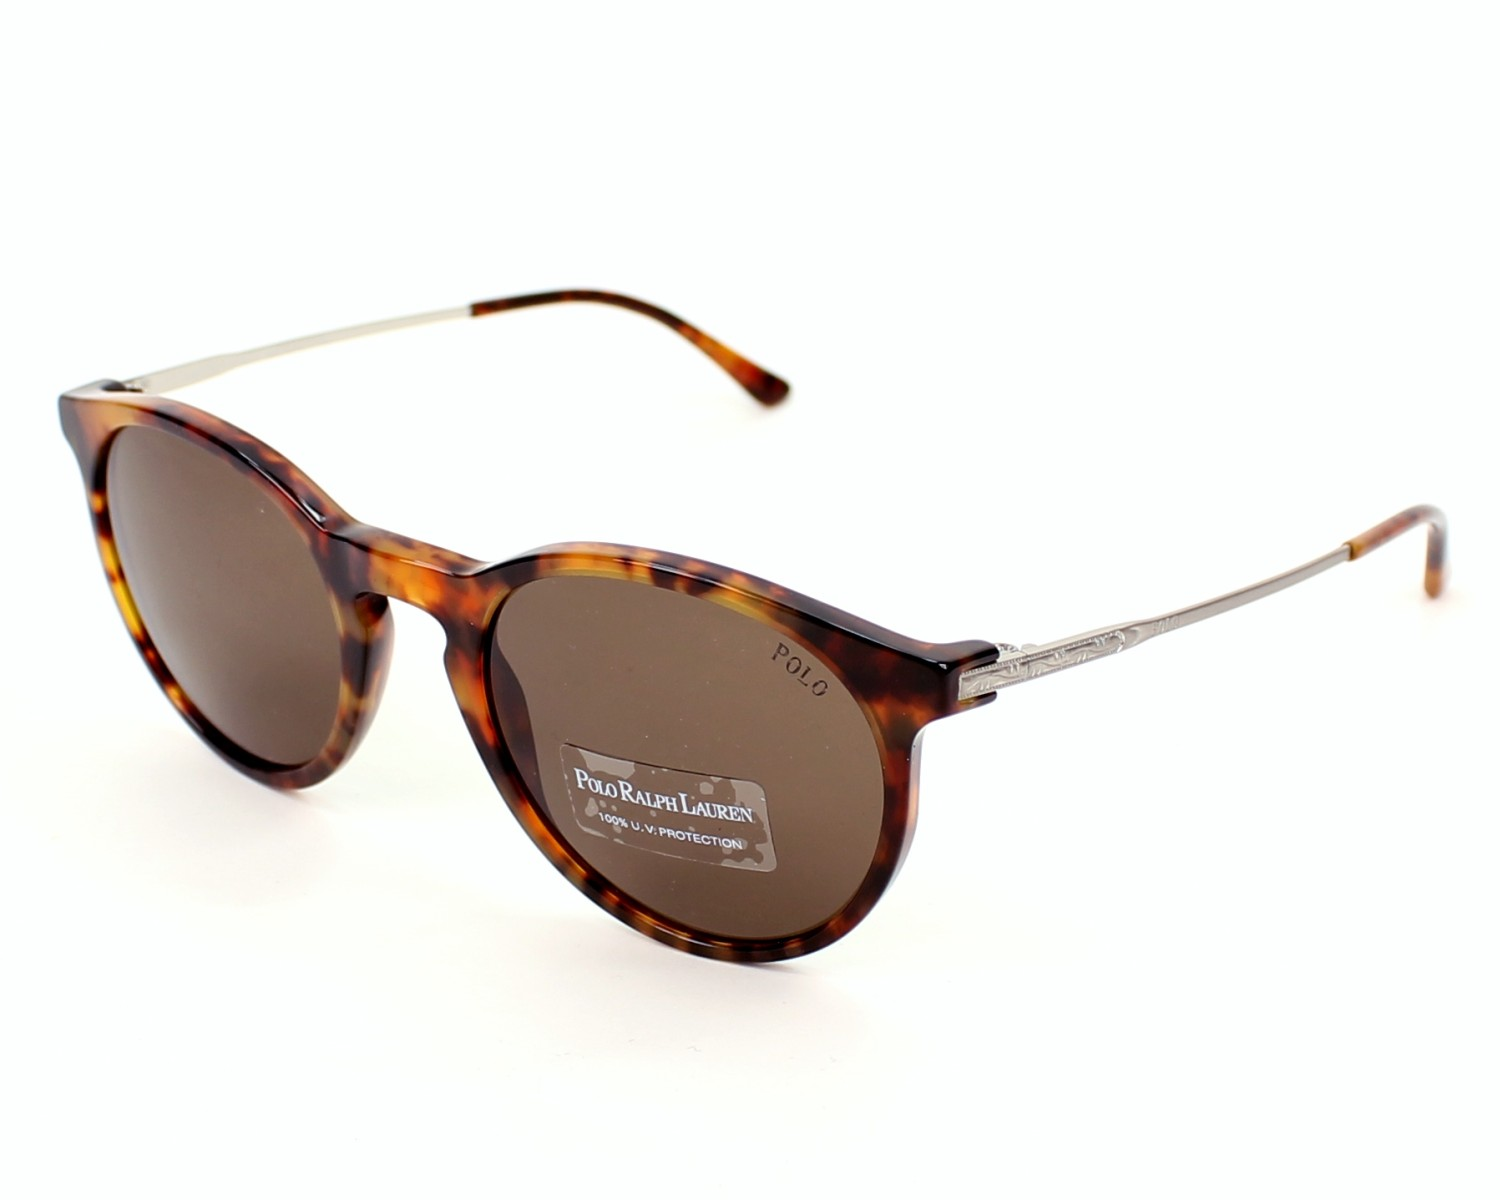 afe1b79d2324e Sunglasses Polo Ralph Lauren PH-4096 5017 73 50-20 Havana Silver profile